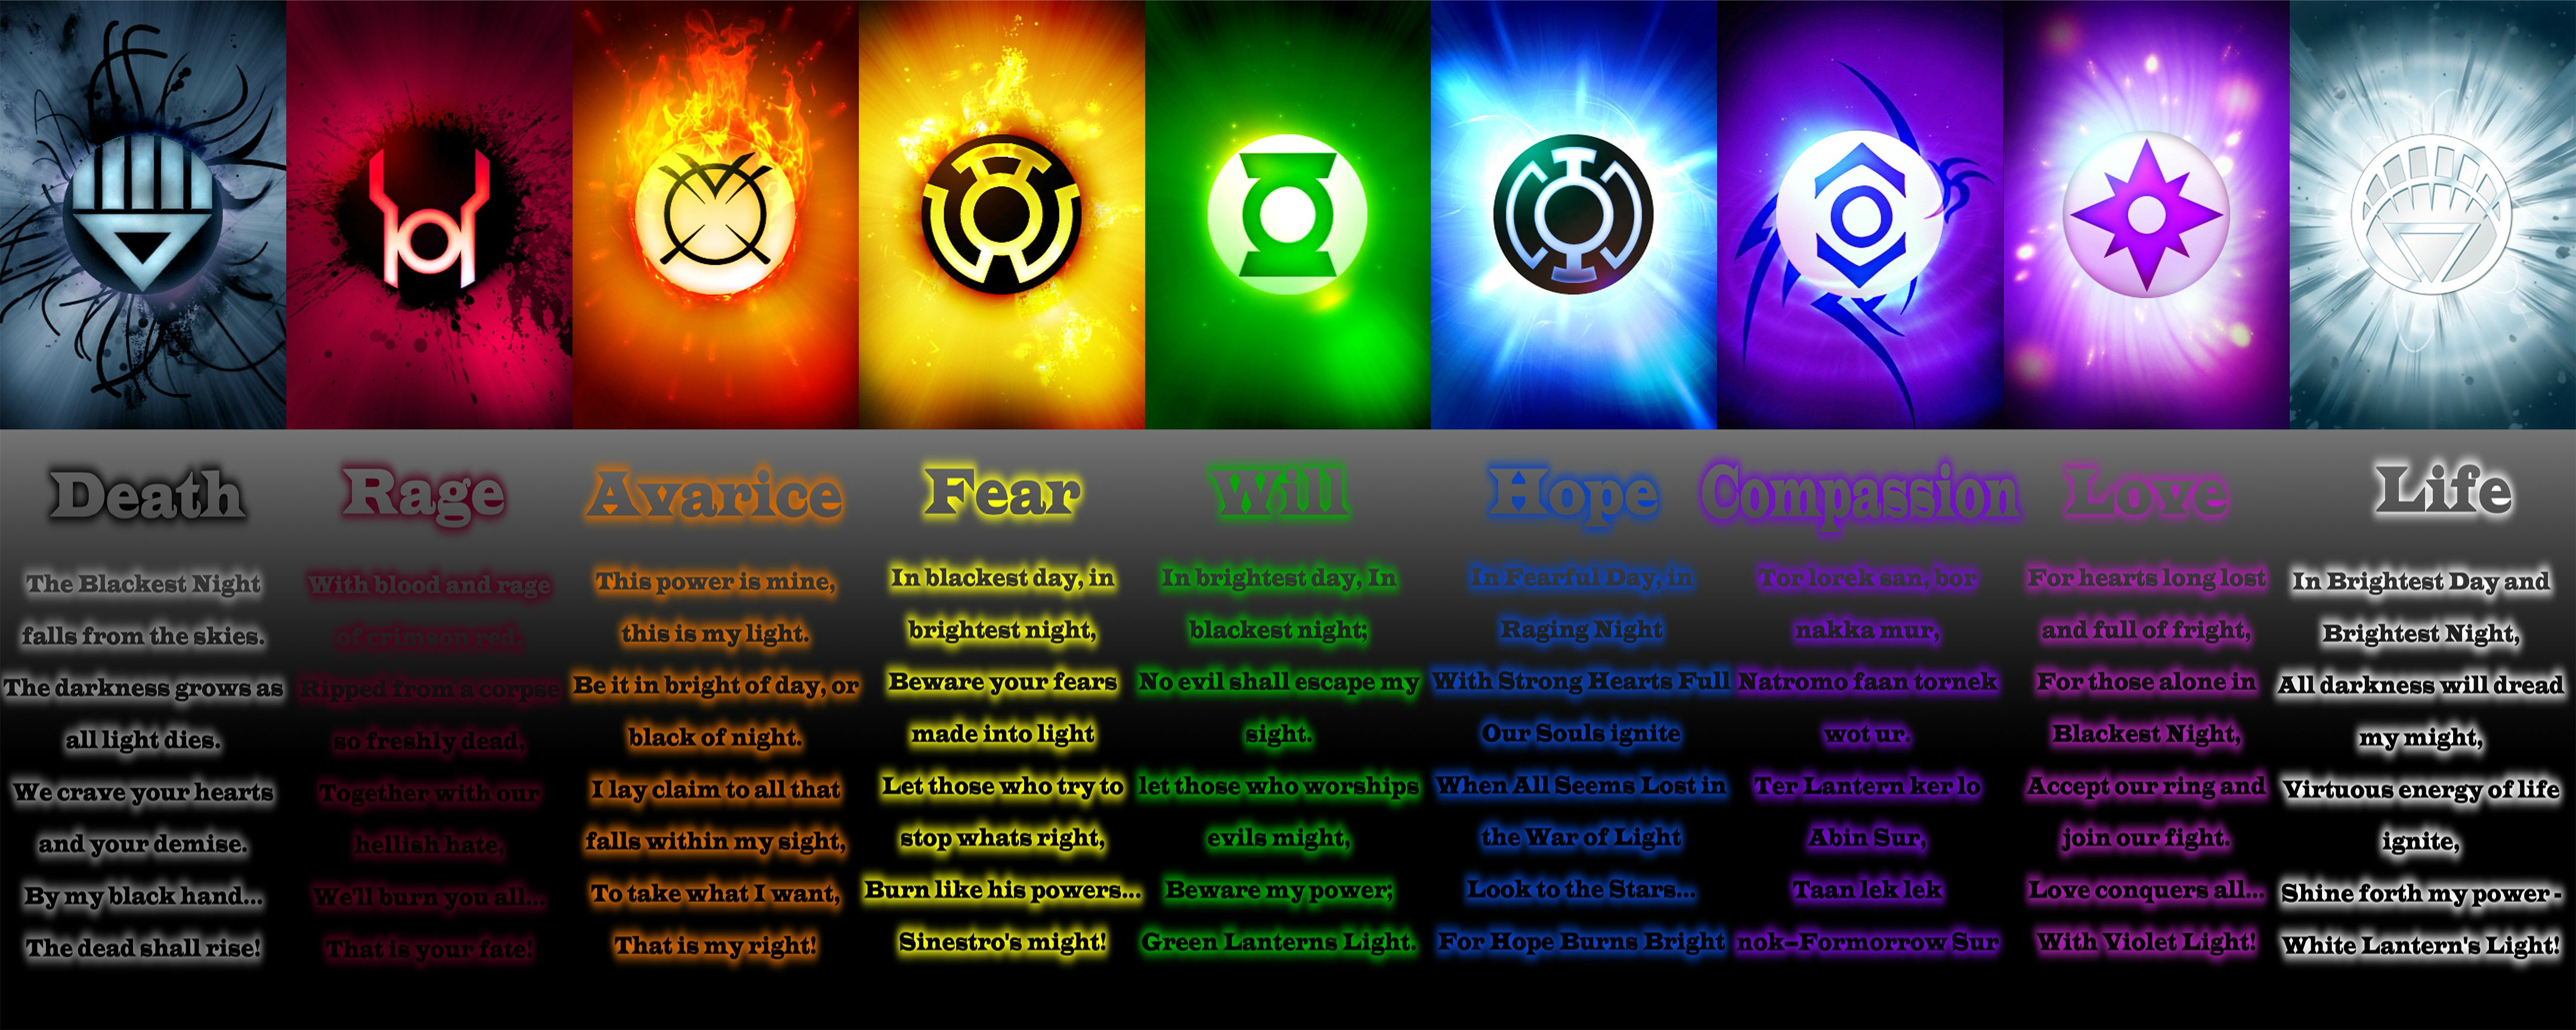 All 9 Lantern Corps Oaths HD Walls Find Wallpapers 4319x1727